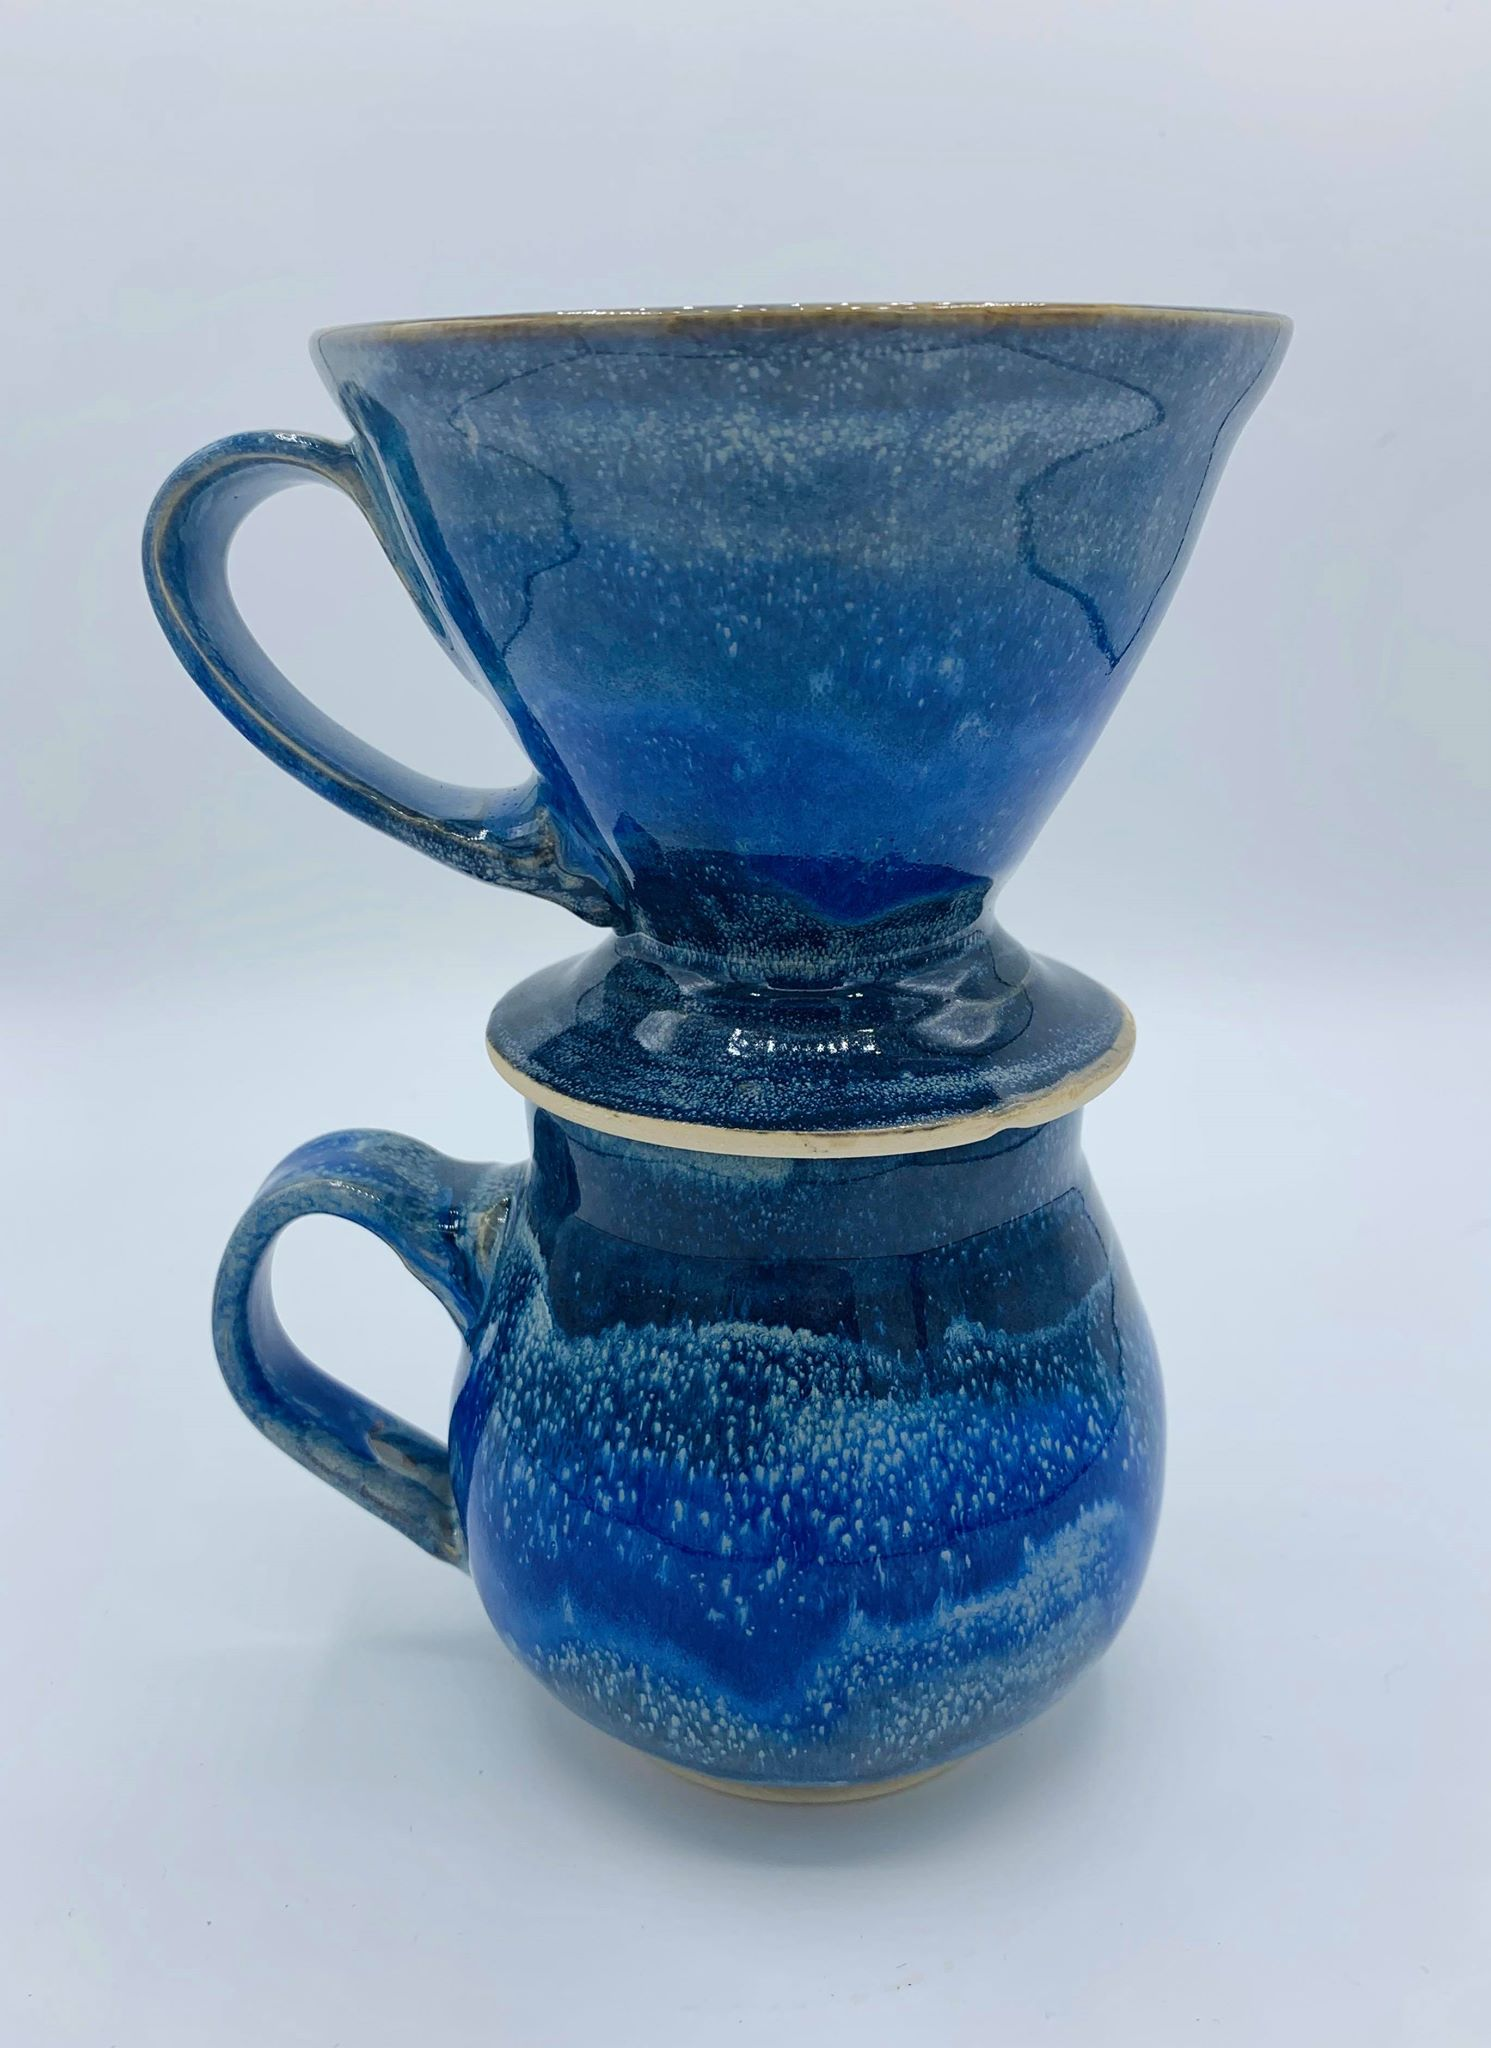 Leagues - A Layered Pour Over